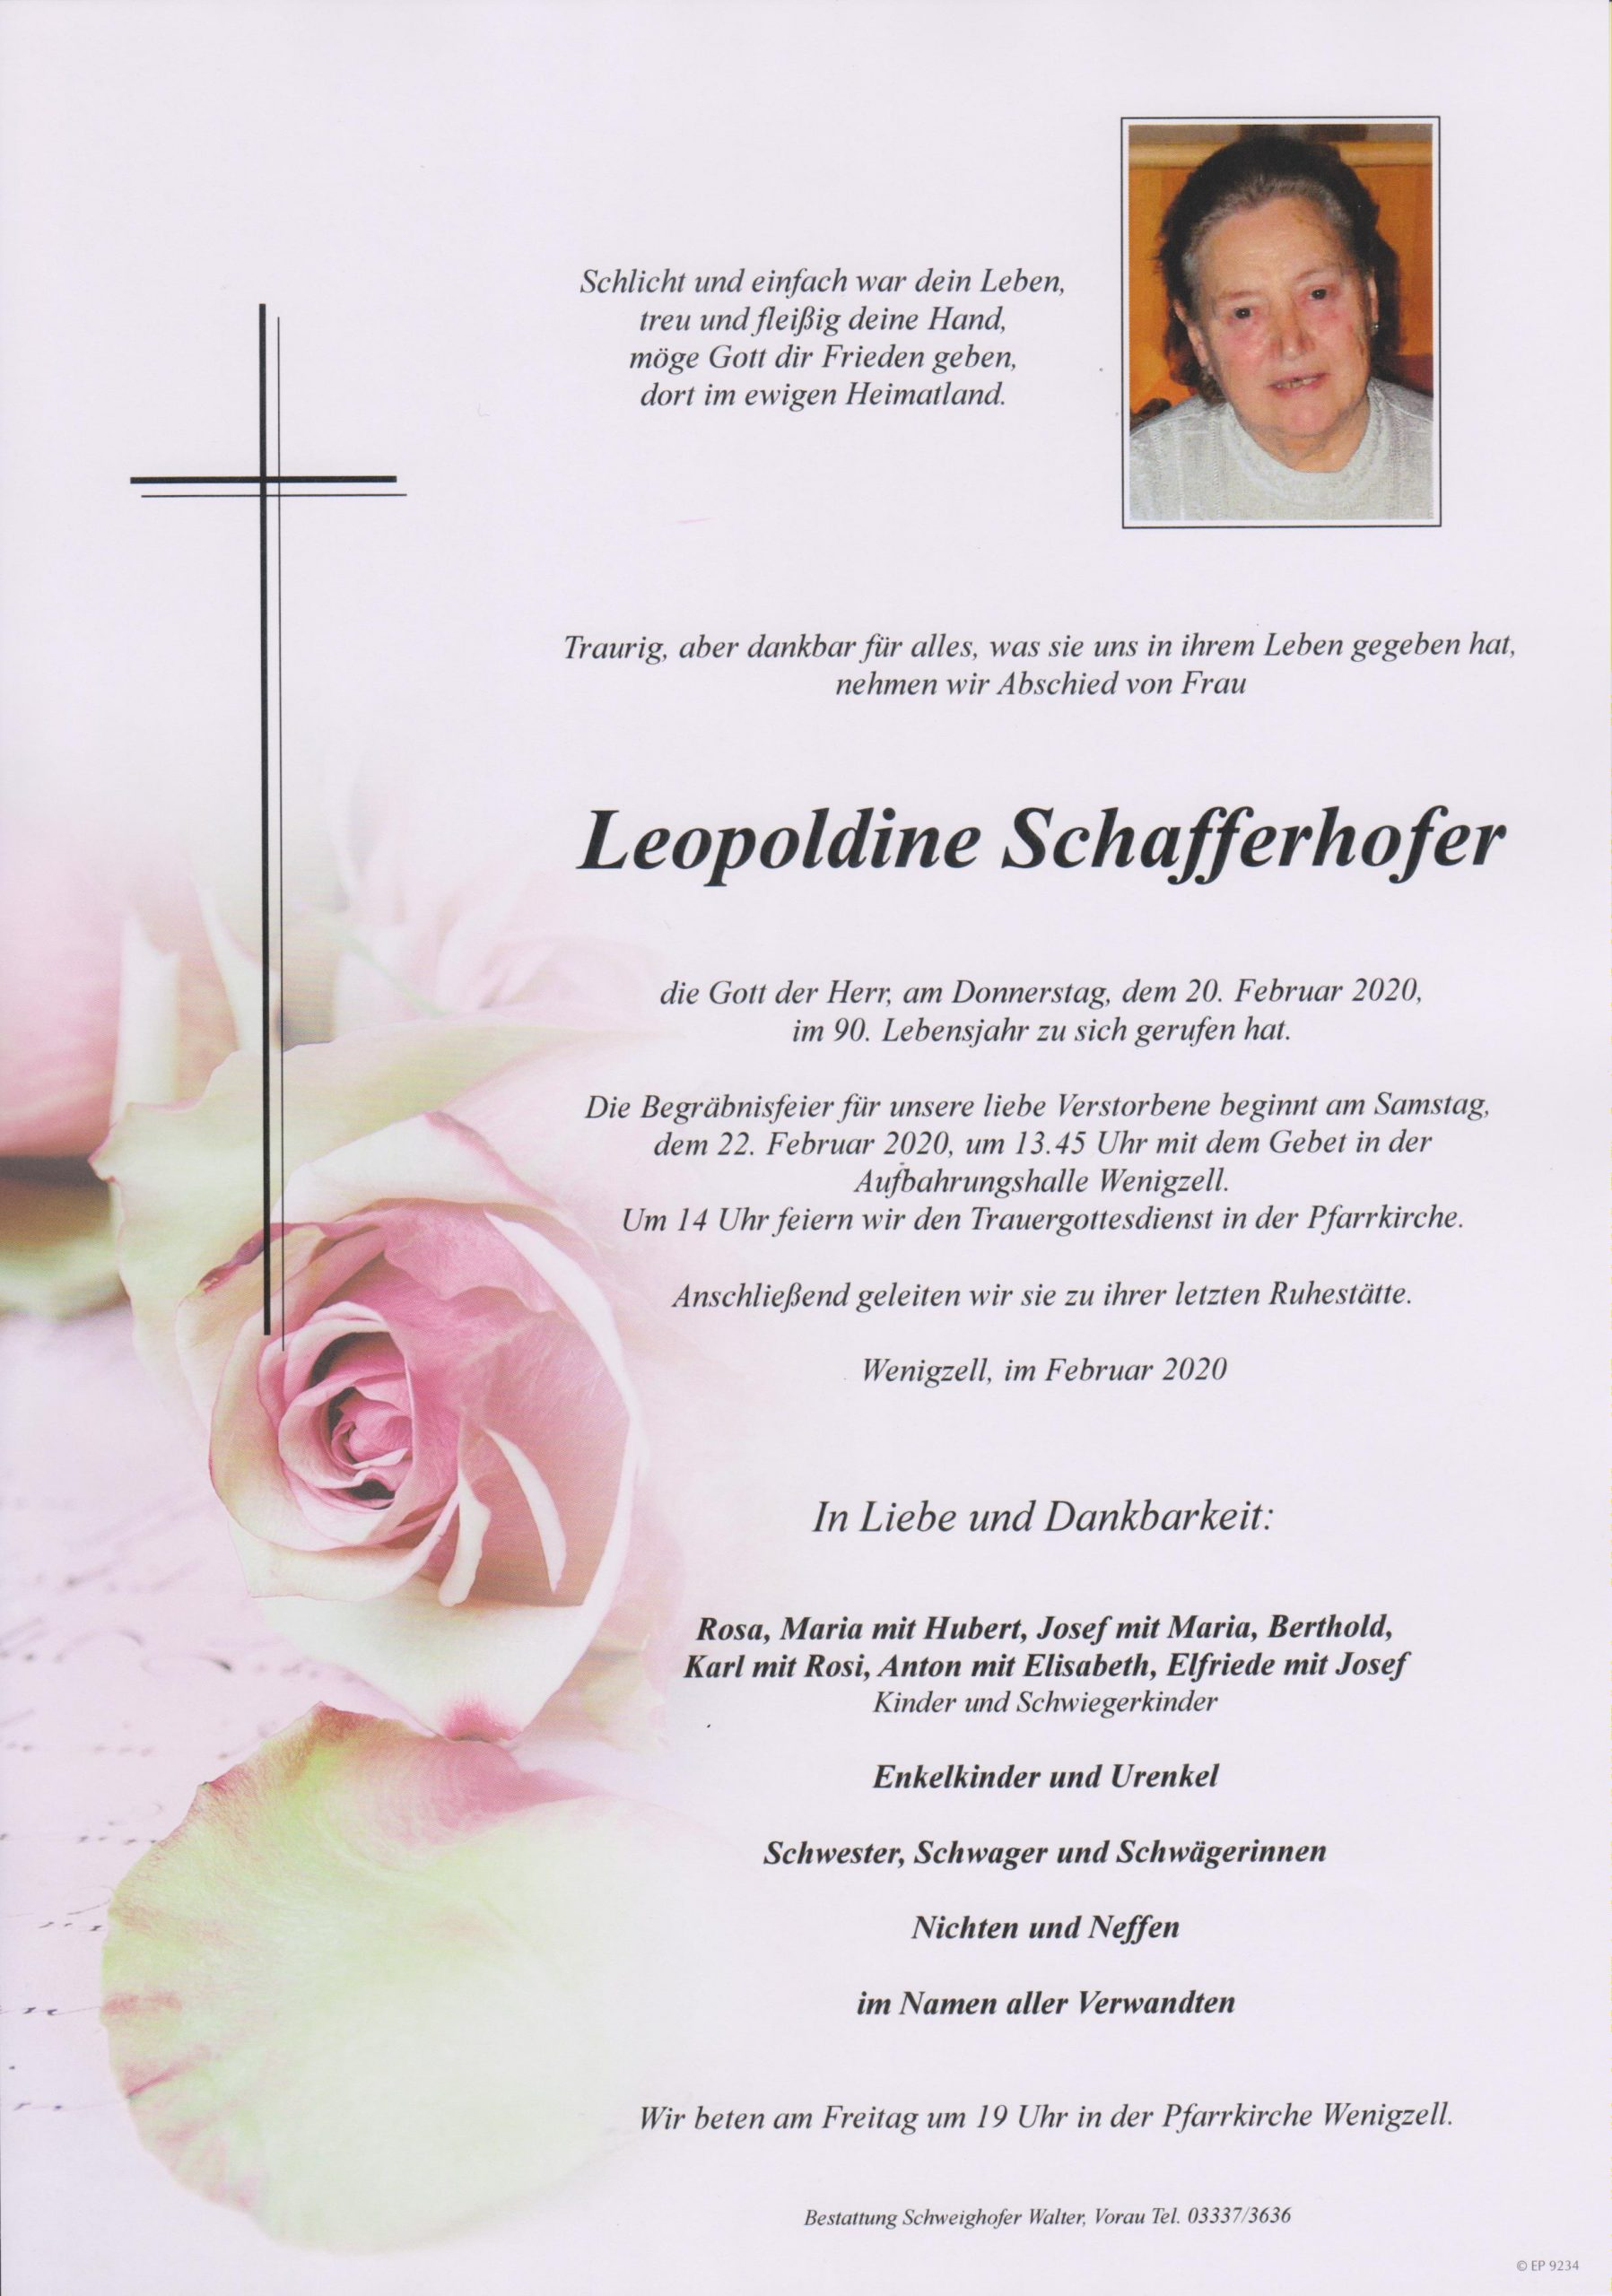 Leopoldine Schafferhofer